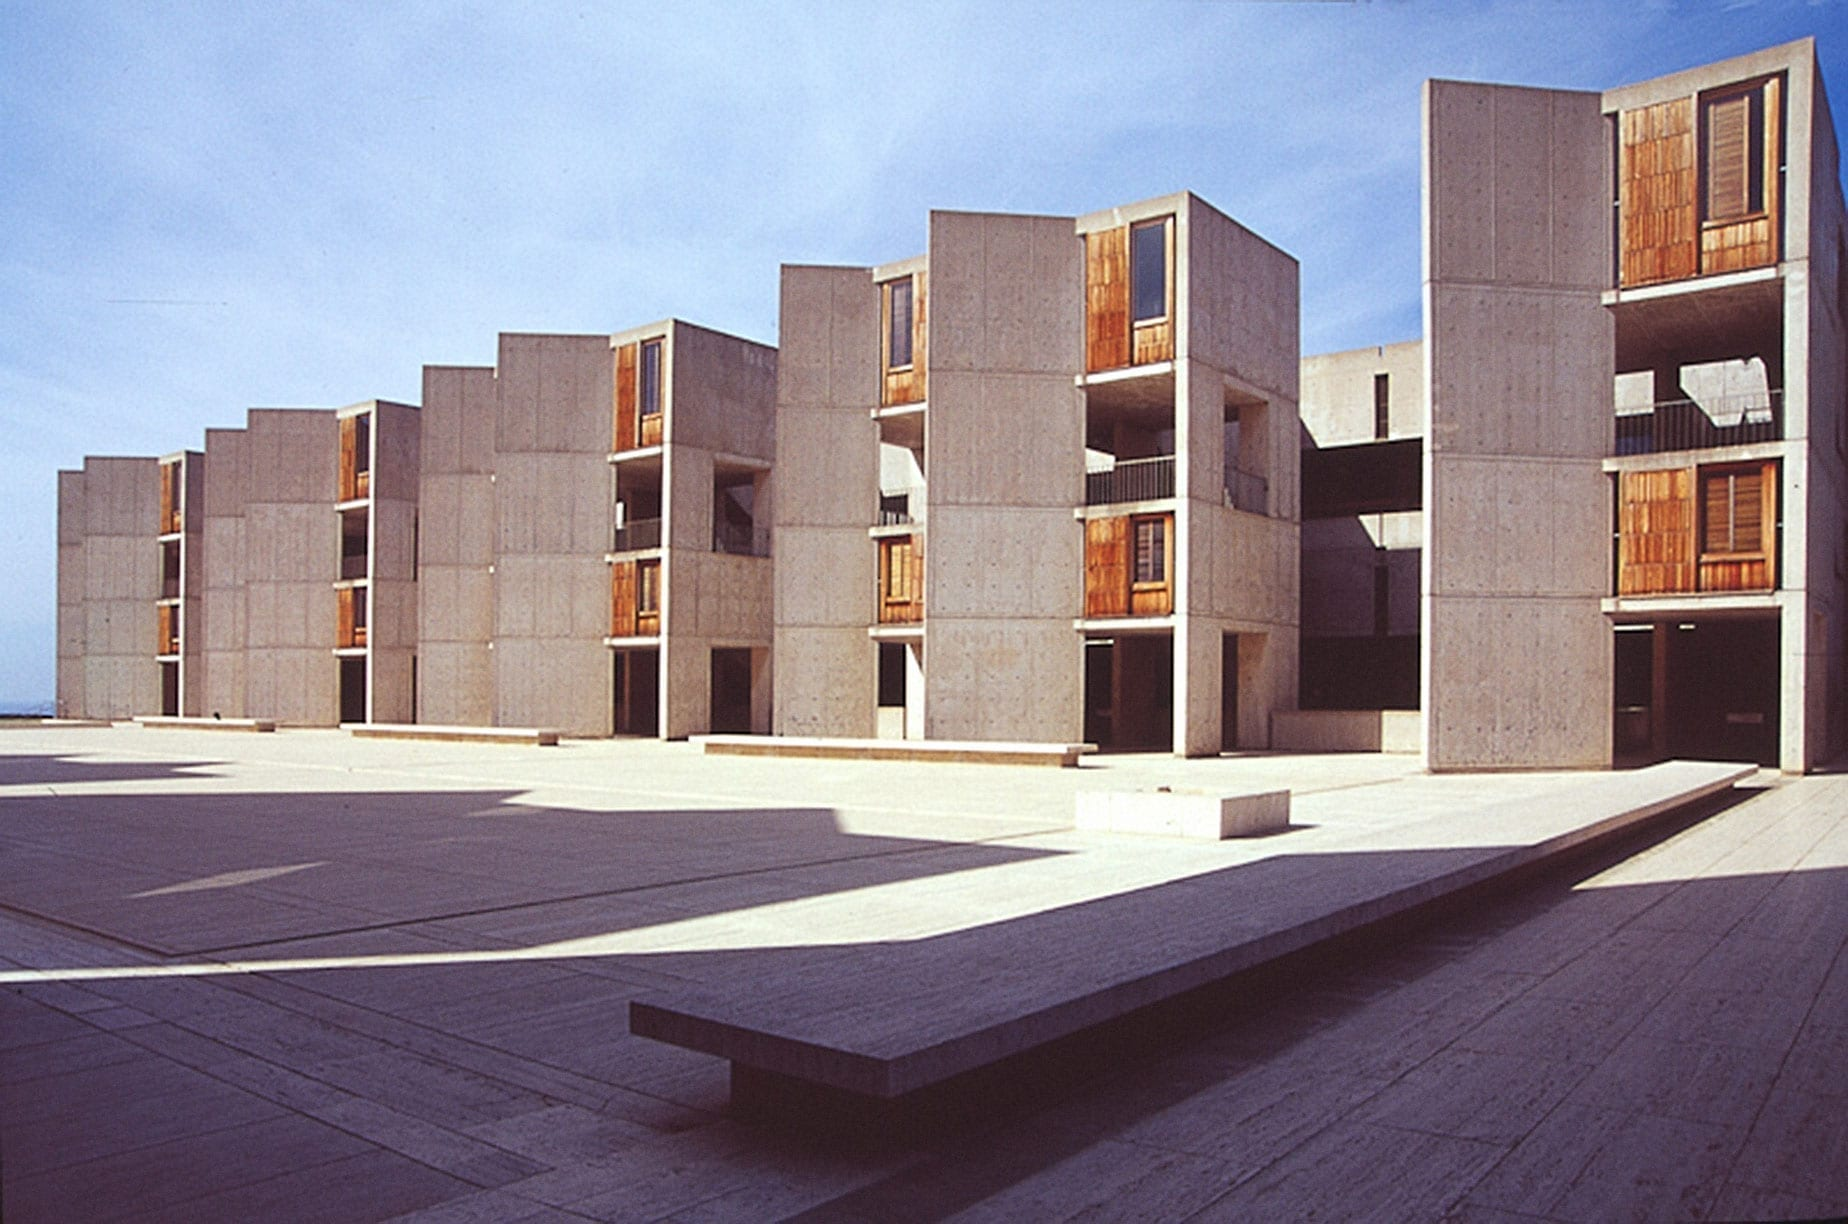 Image of The Salk Institute for Biological Studies